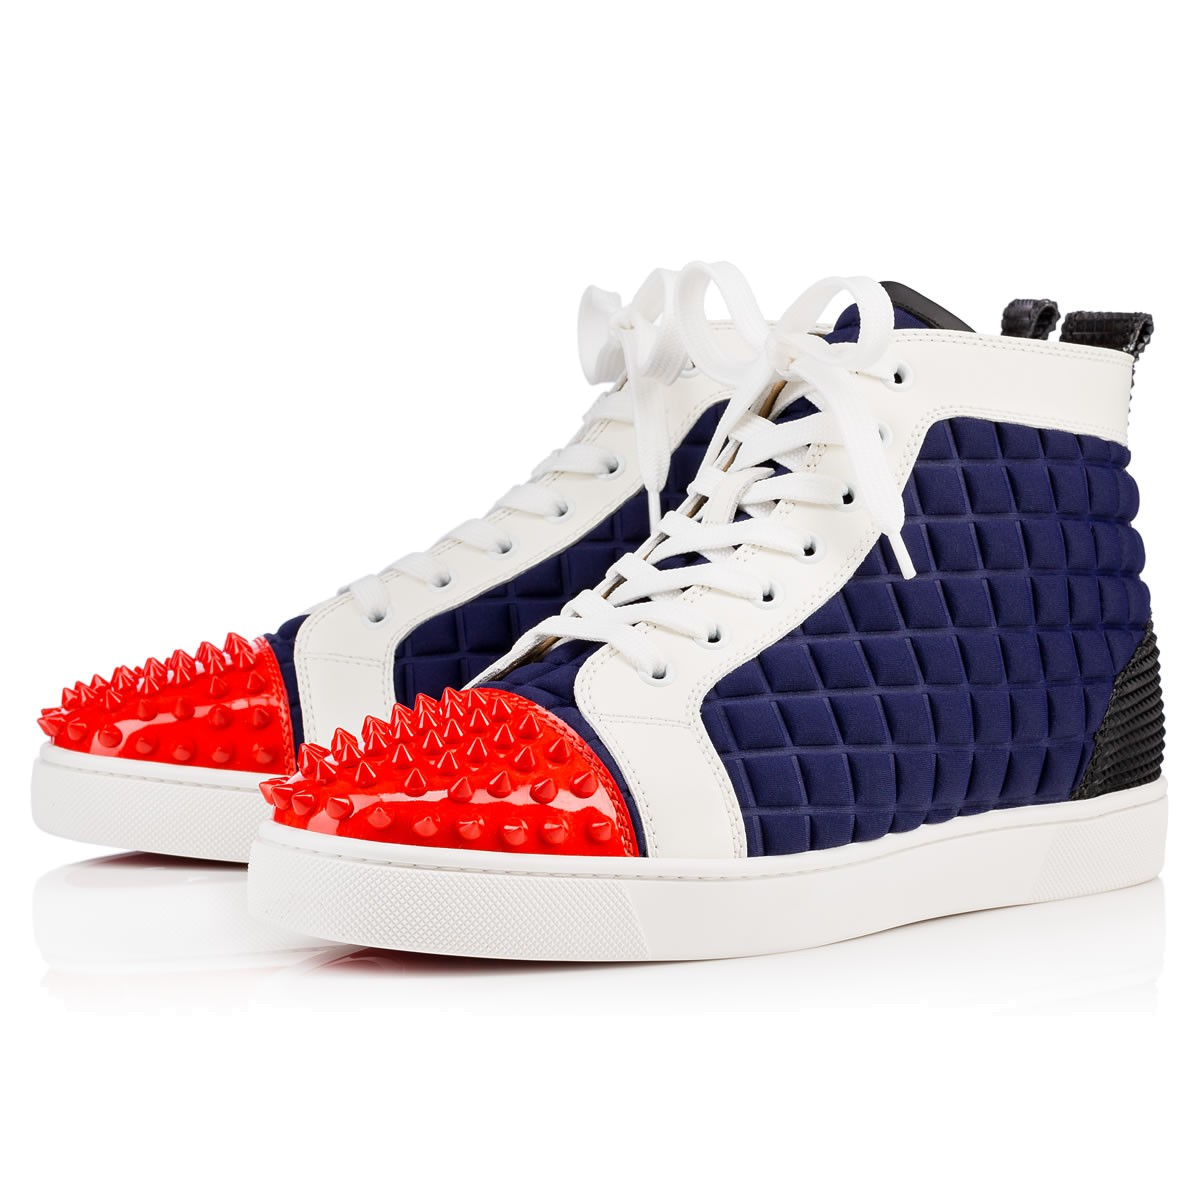 1ad3777f7f5 low price christian louboutin mens sneakers 2016 f45fd 4e191